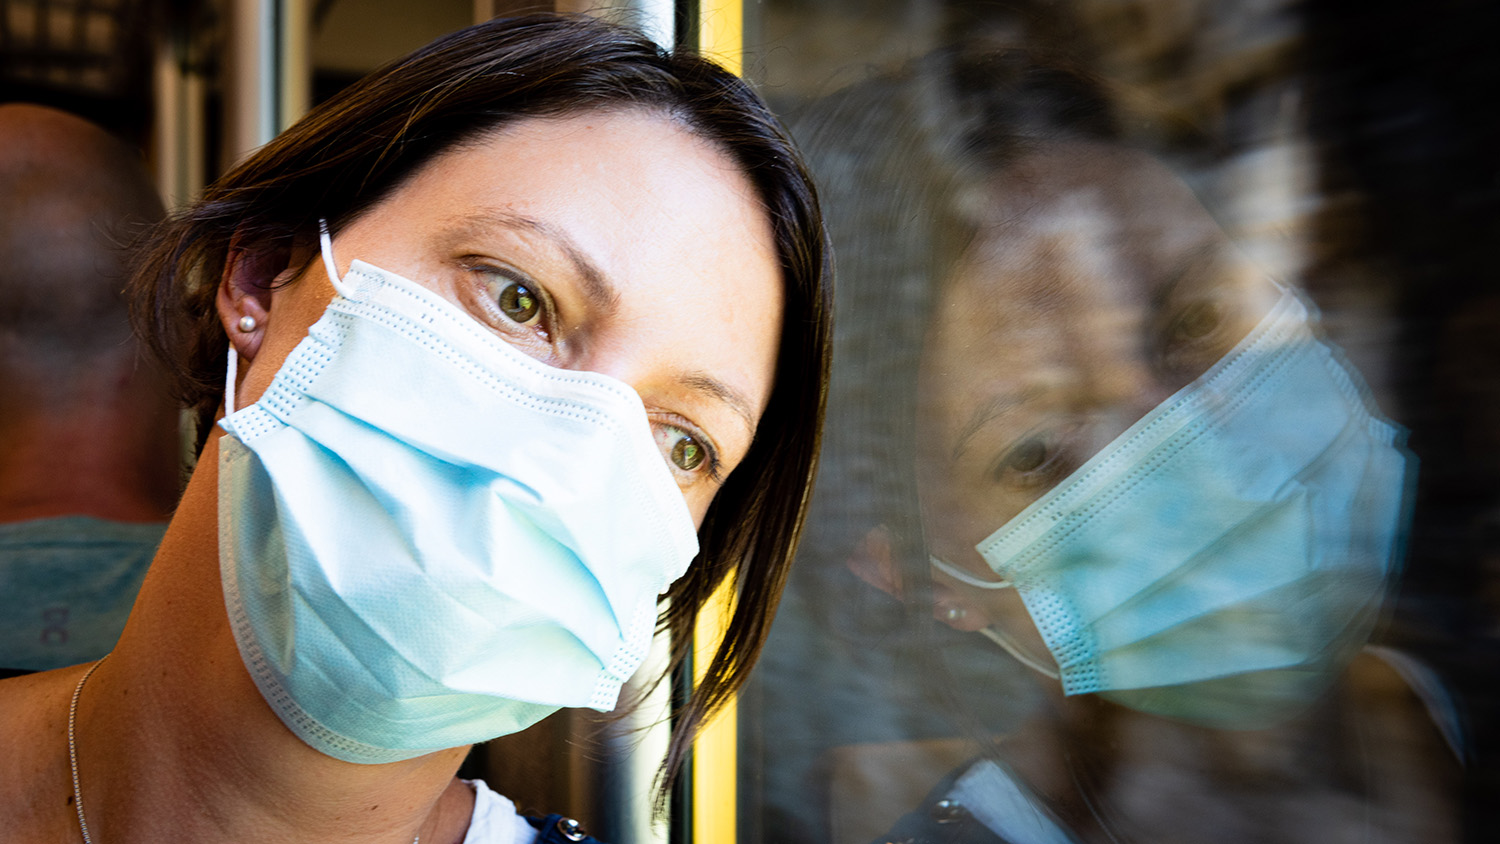 Woman wearing surgical mask leaning her head against window, looking outside